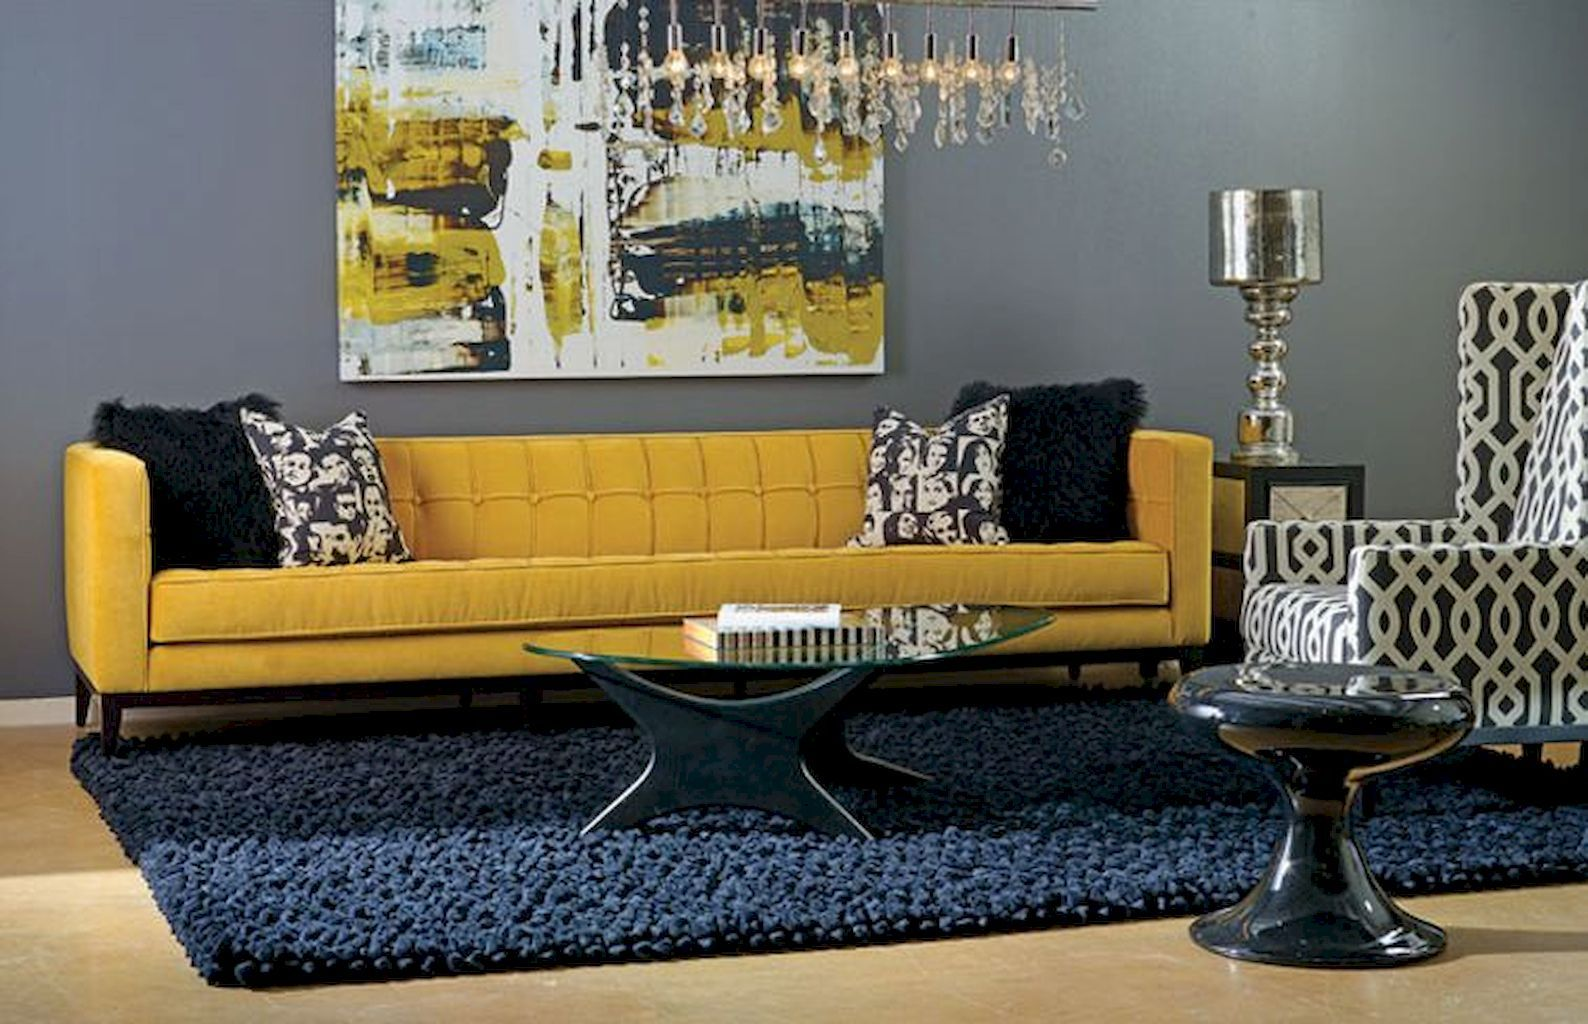 65 Beautiful Yellow Sofa For Living Room Decor Ideas Blue Living Room Decor Blue And Yellow Living Room Blue Living Room